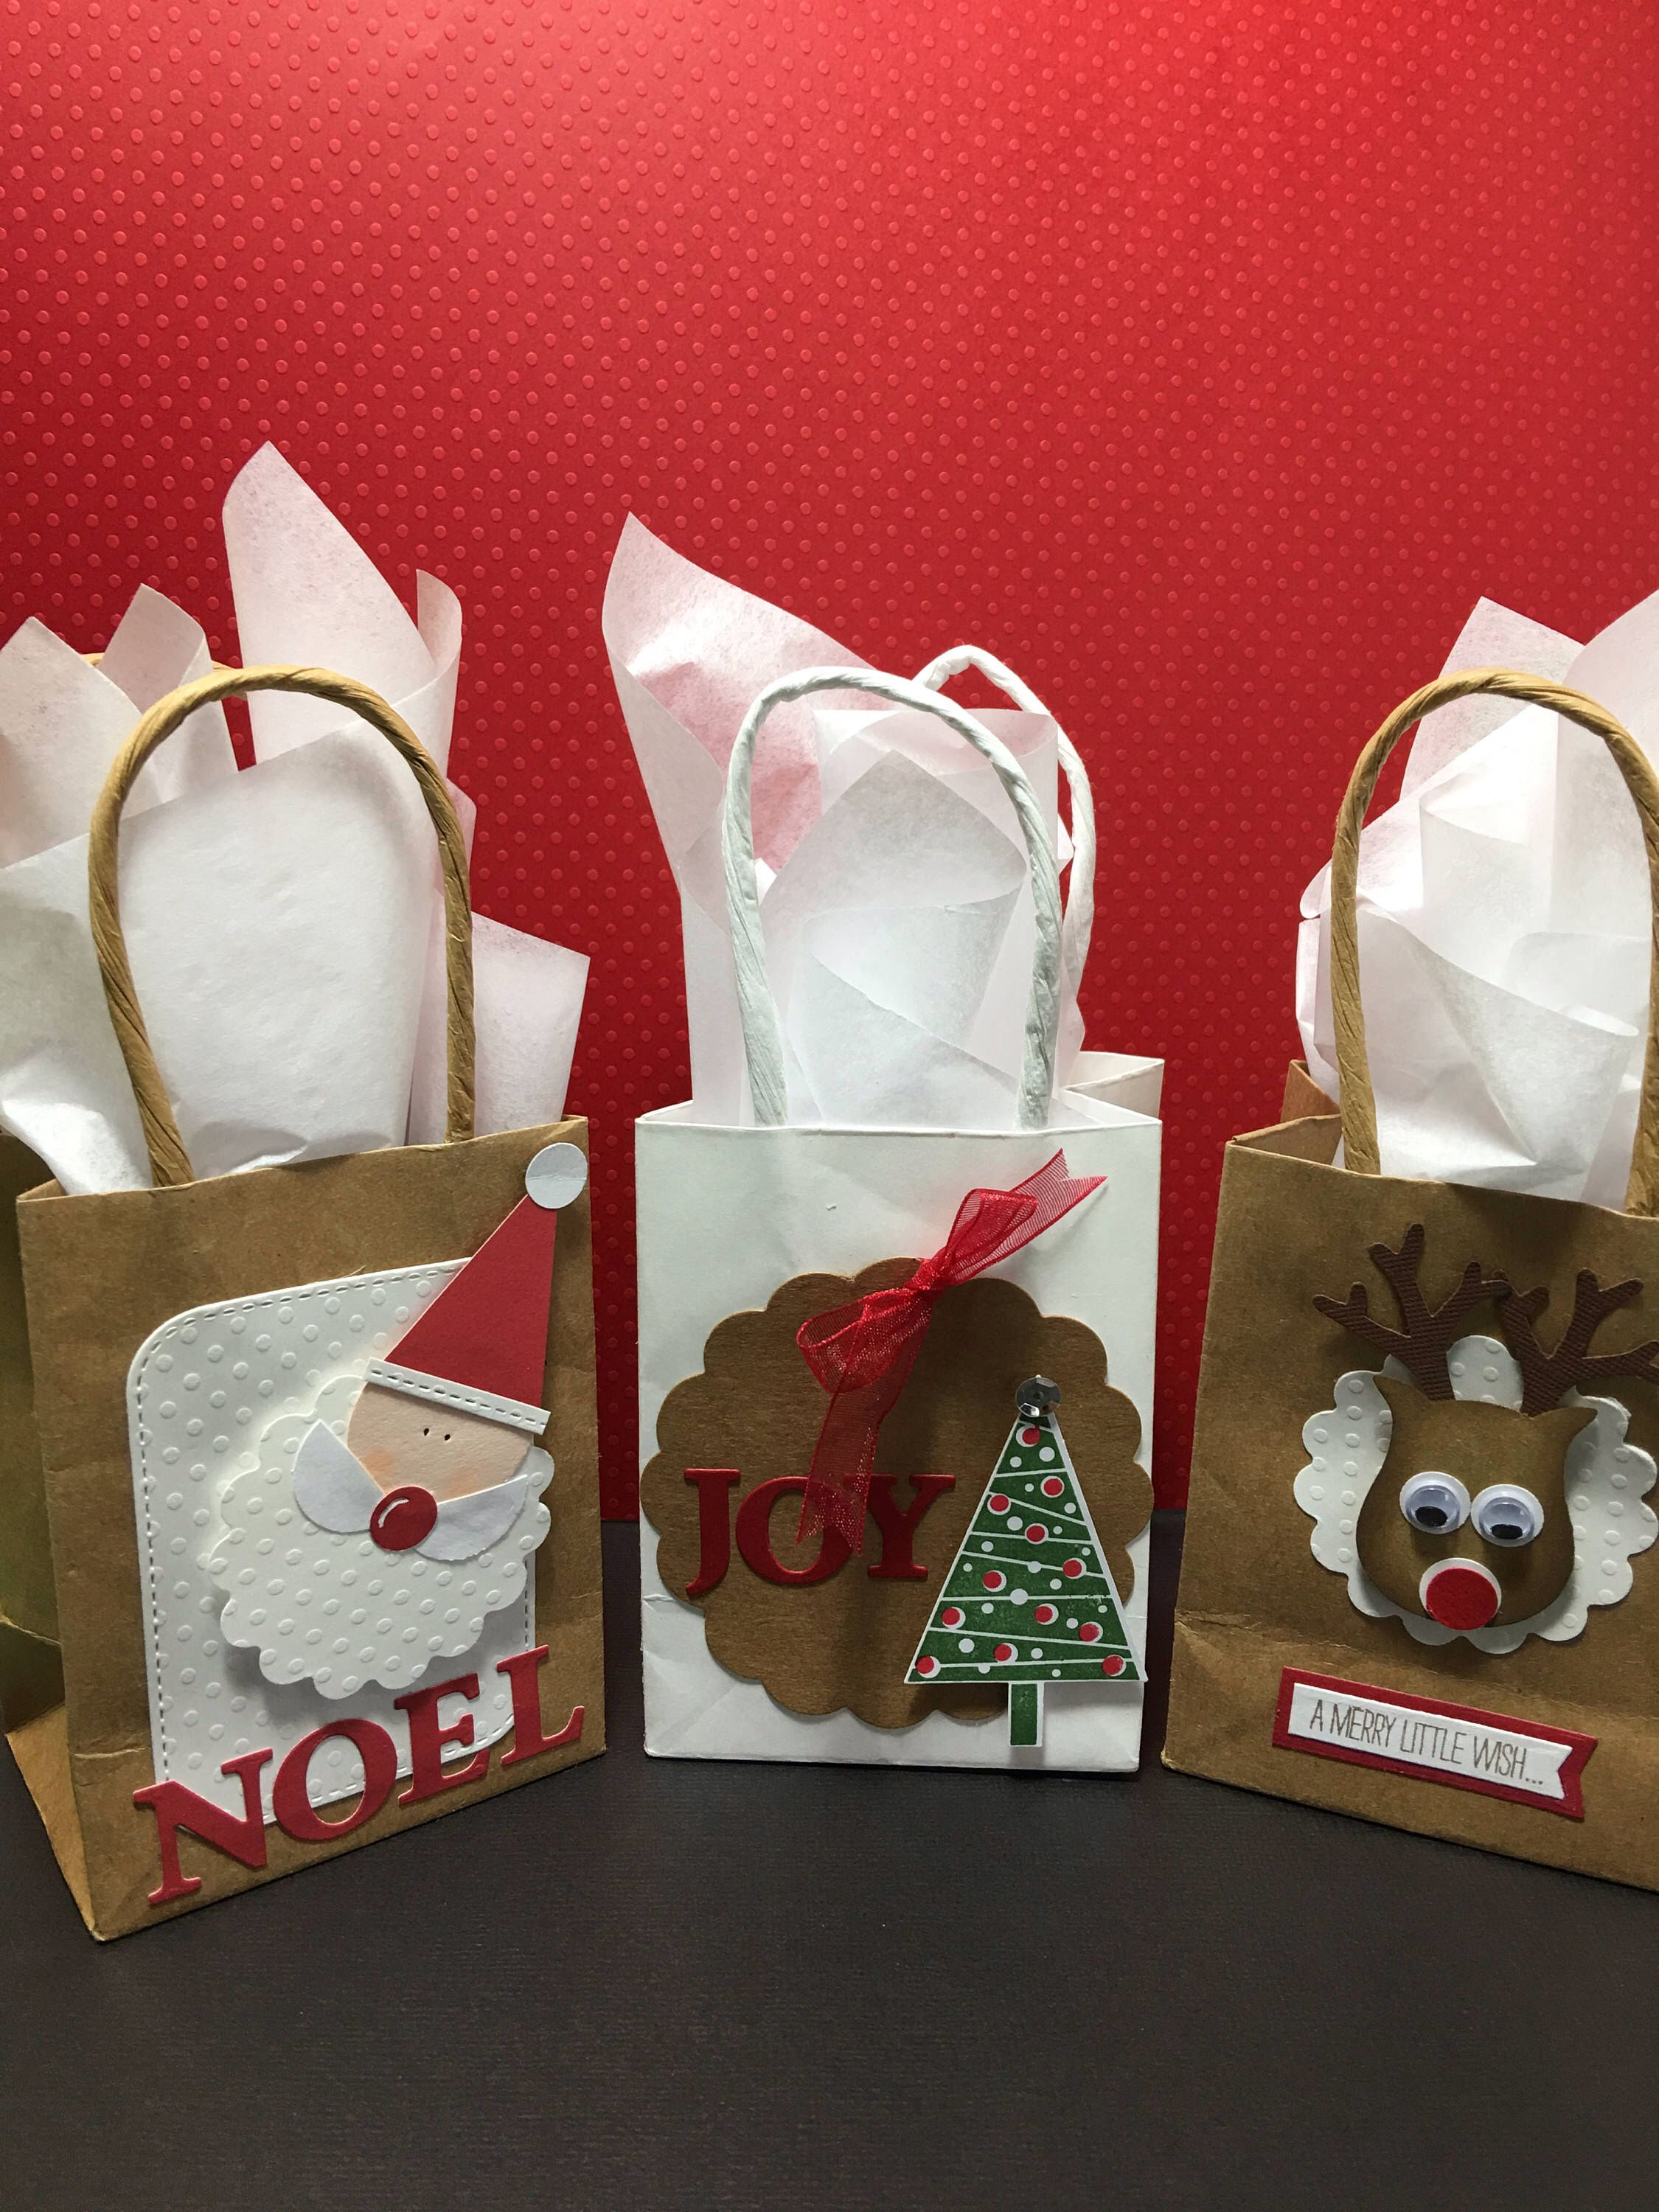 Christmas Mini Paper Gift Bags Secret Santa Gift Ideas Etsy Christmas Party Gift Handmade Christmas Gifts Paper Gifts